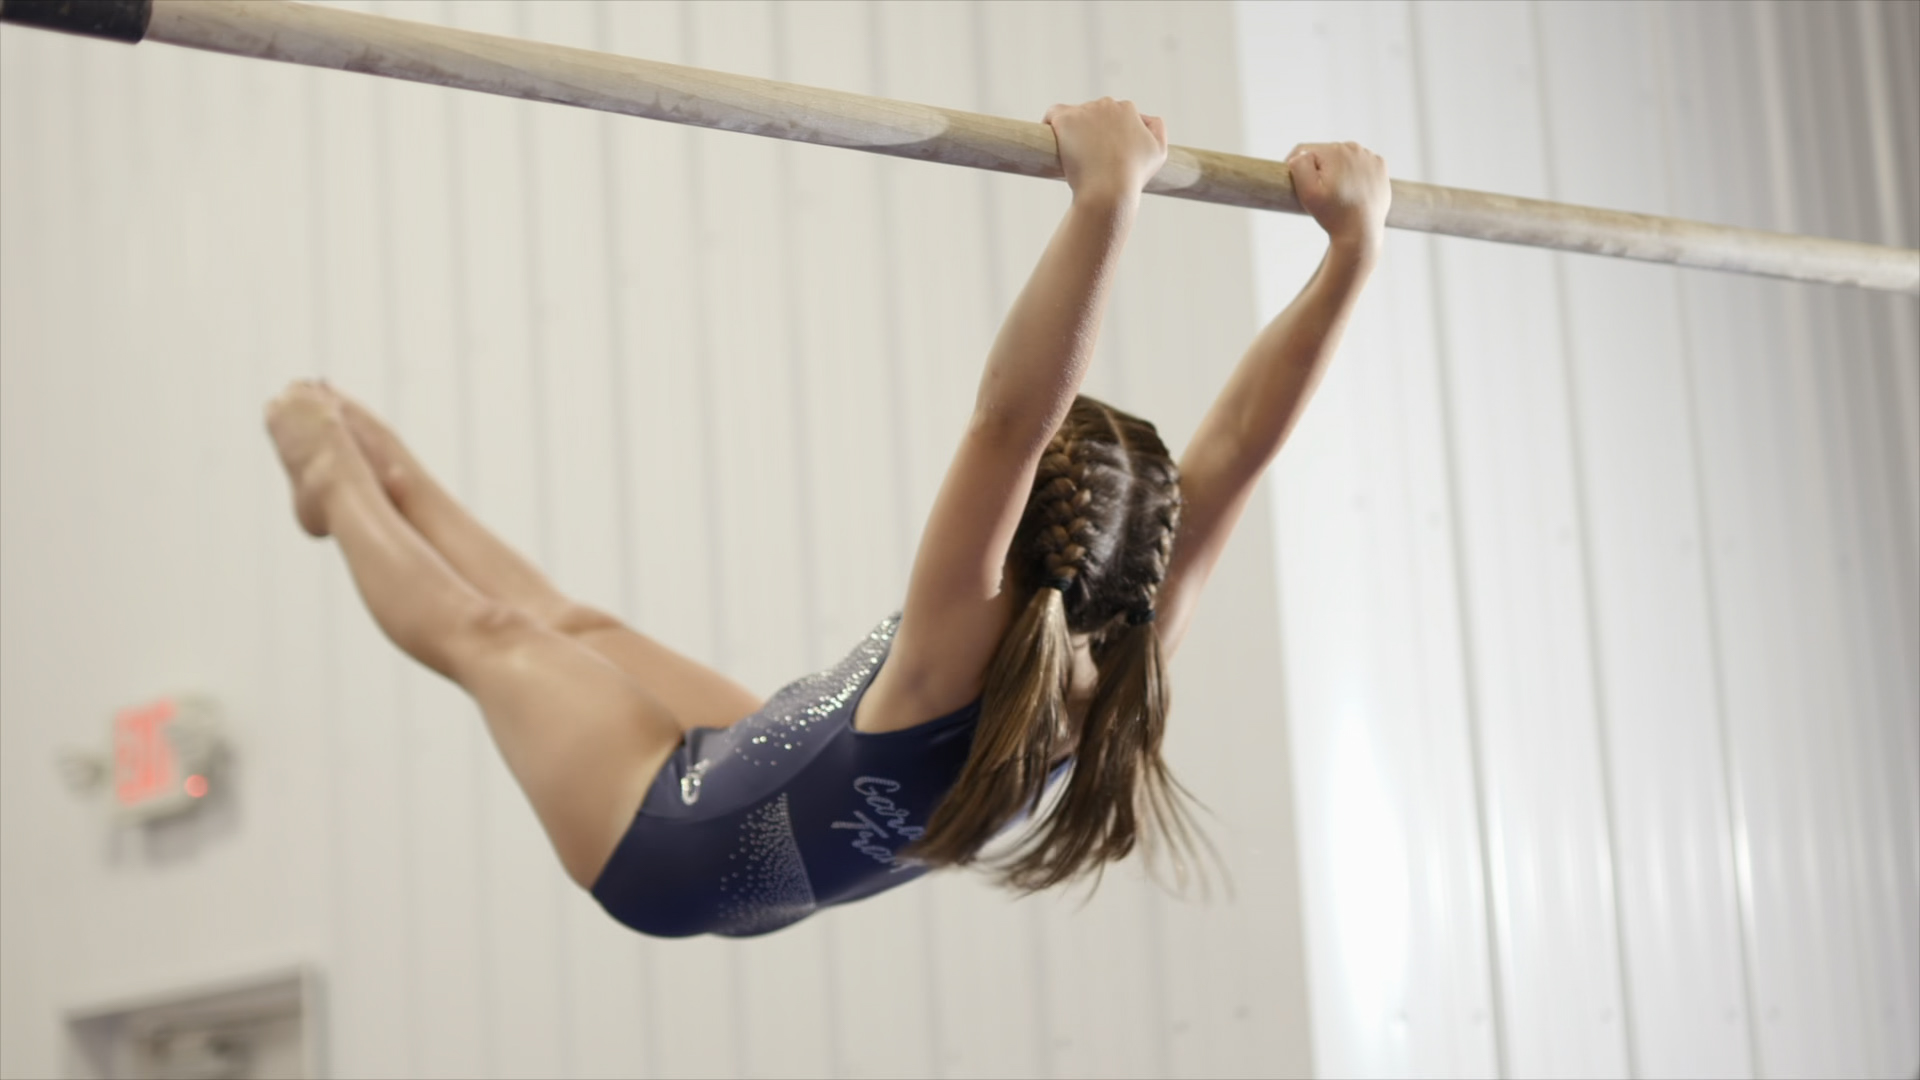 a girl swinging on the uneven bars with her feet pointed.